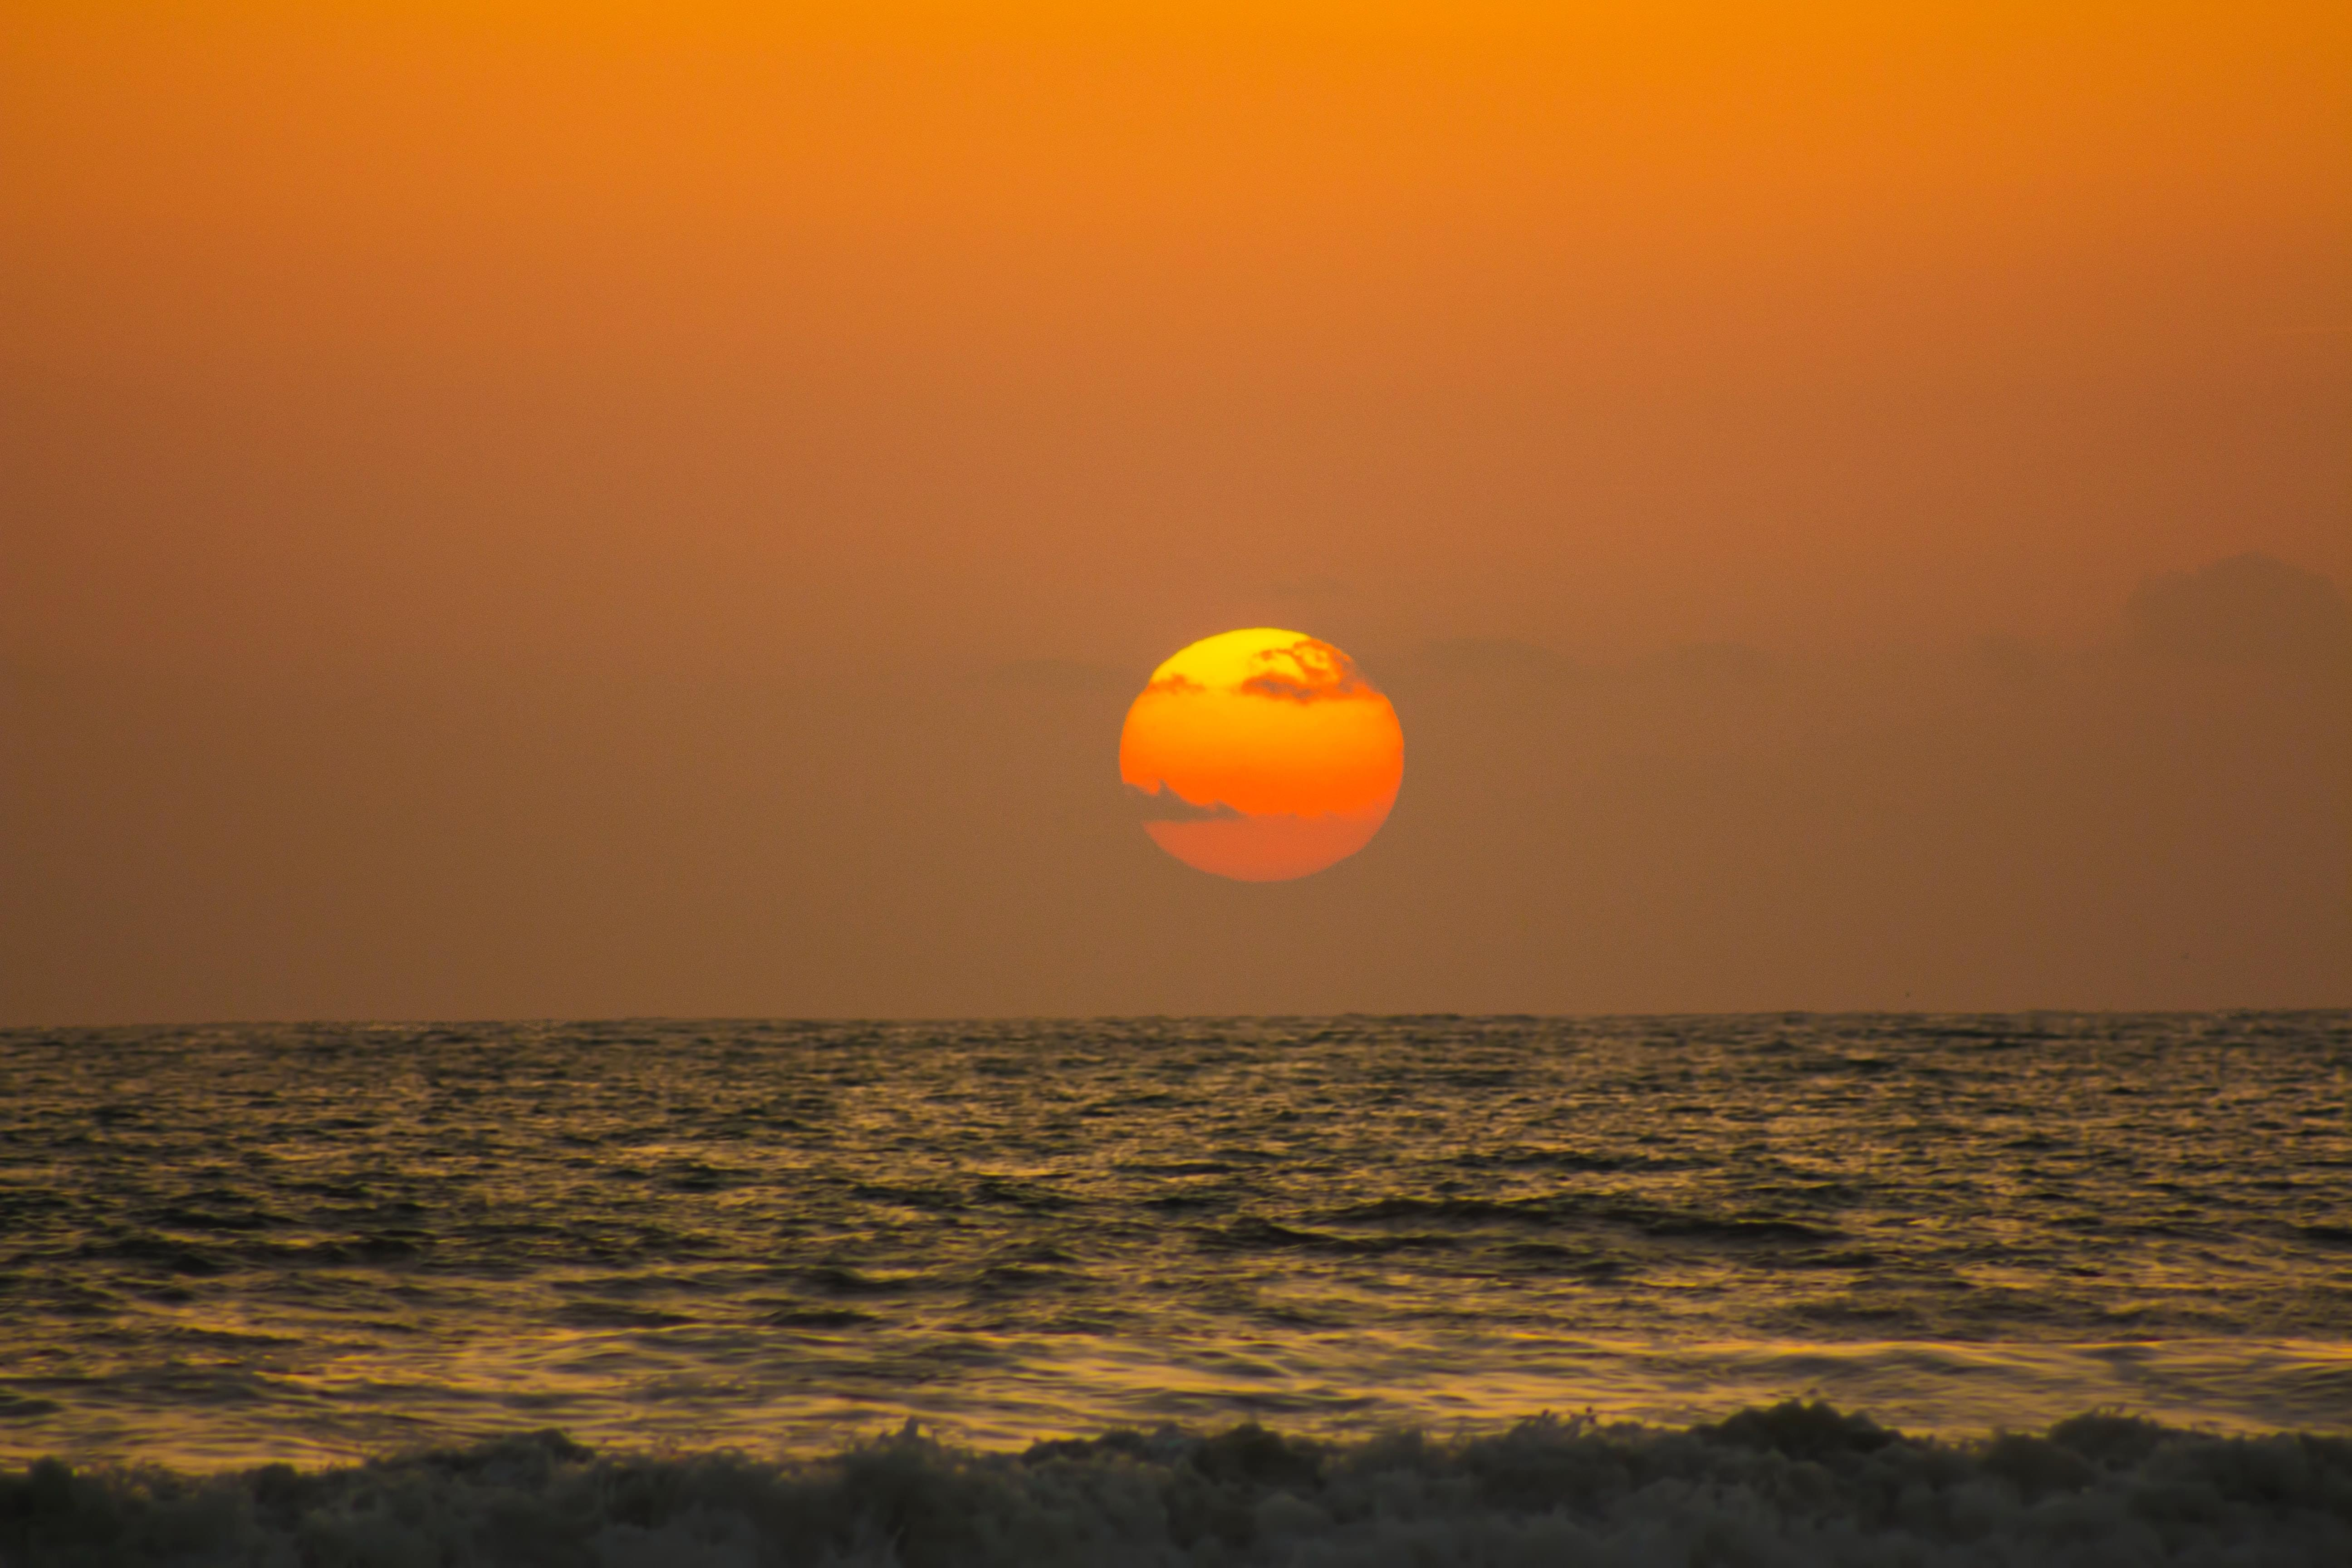 Dazzling-North-Goa-Tour-Package-with-Grand-Island-and-Dudhsagar-JustWravel-1597392104-4.jpg